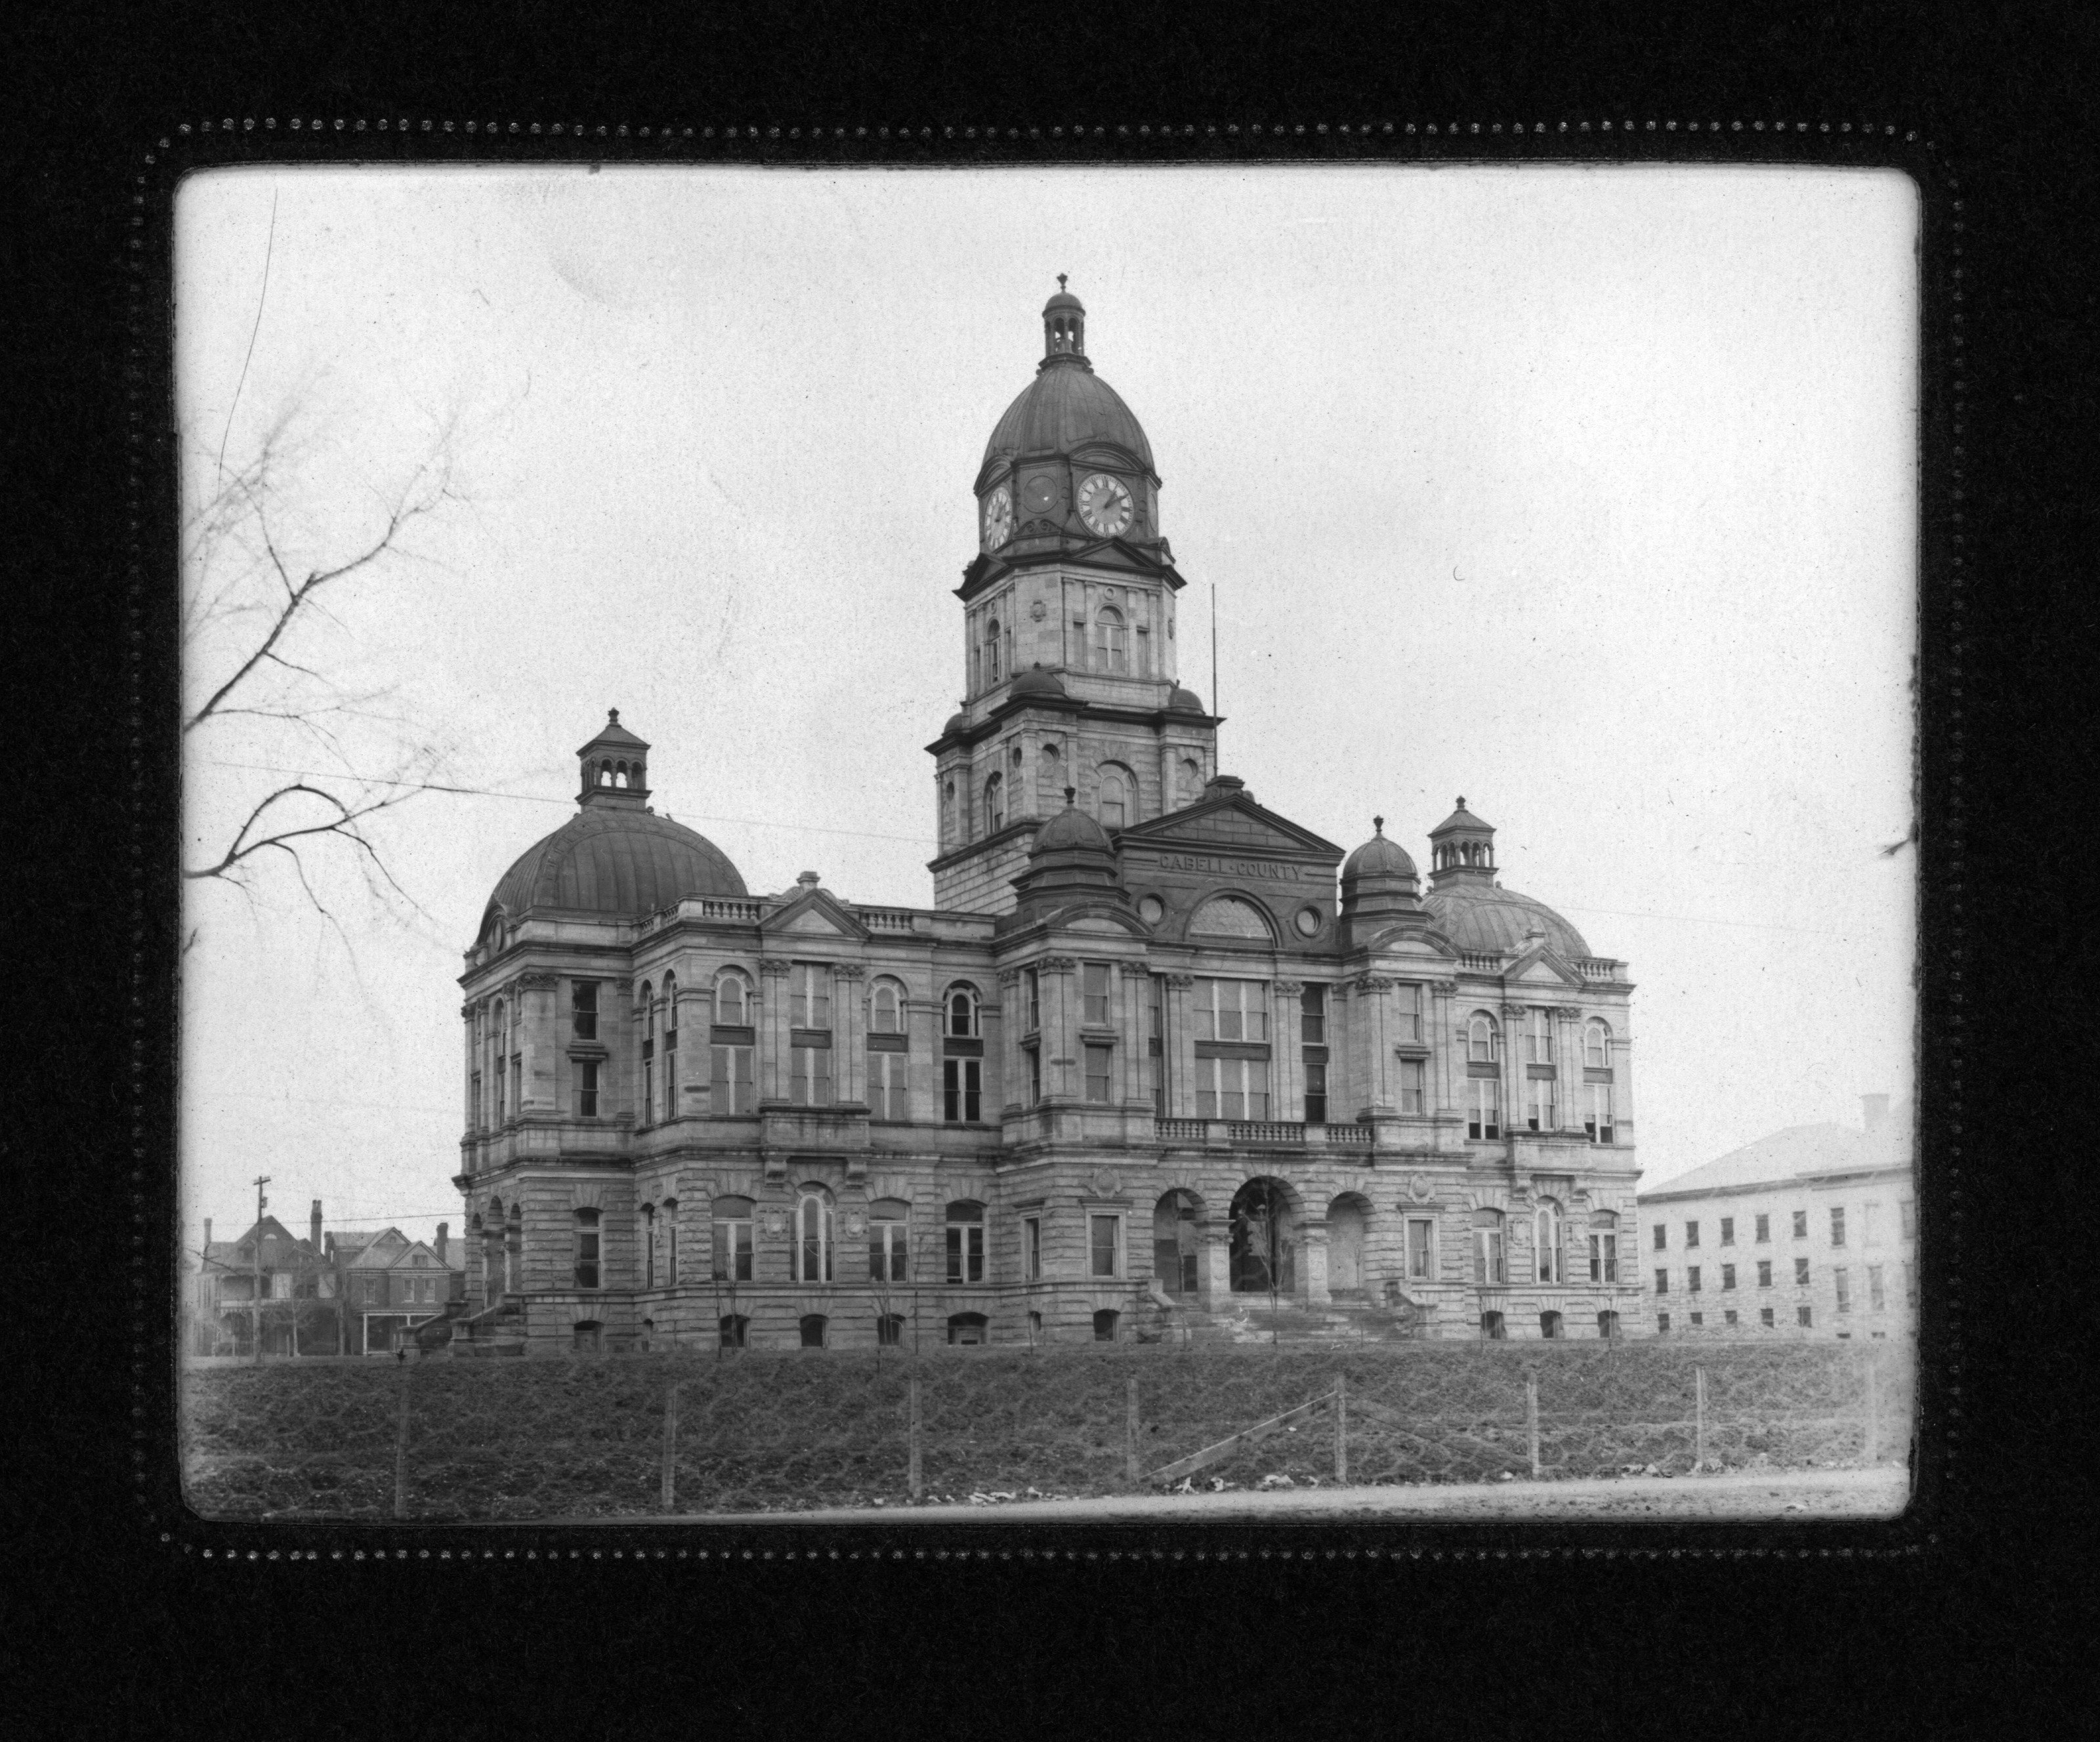 The courthouse sometime shortly after its completion. It was constructed over a two year period from 1899-1901 and cost nearly $100,000 to build. Image courtesy of Marshall University Special Collections.